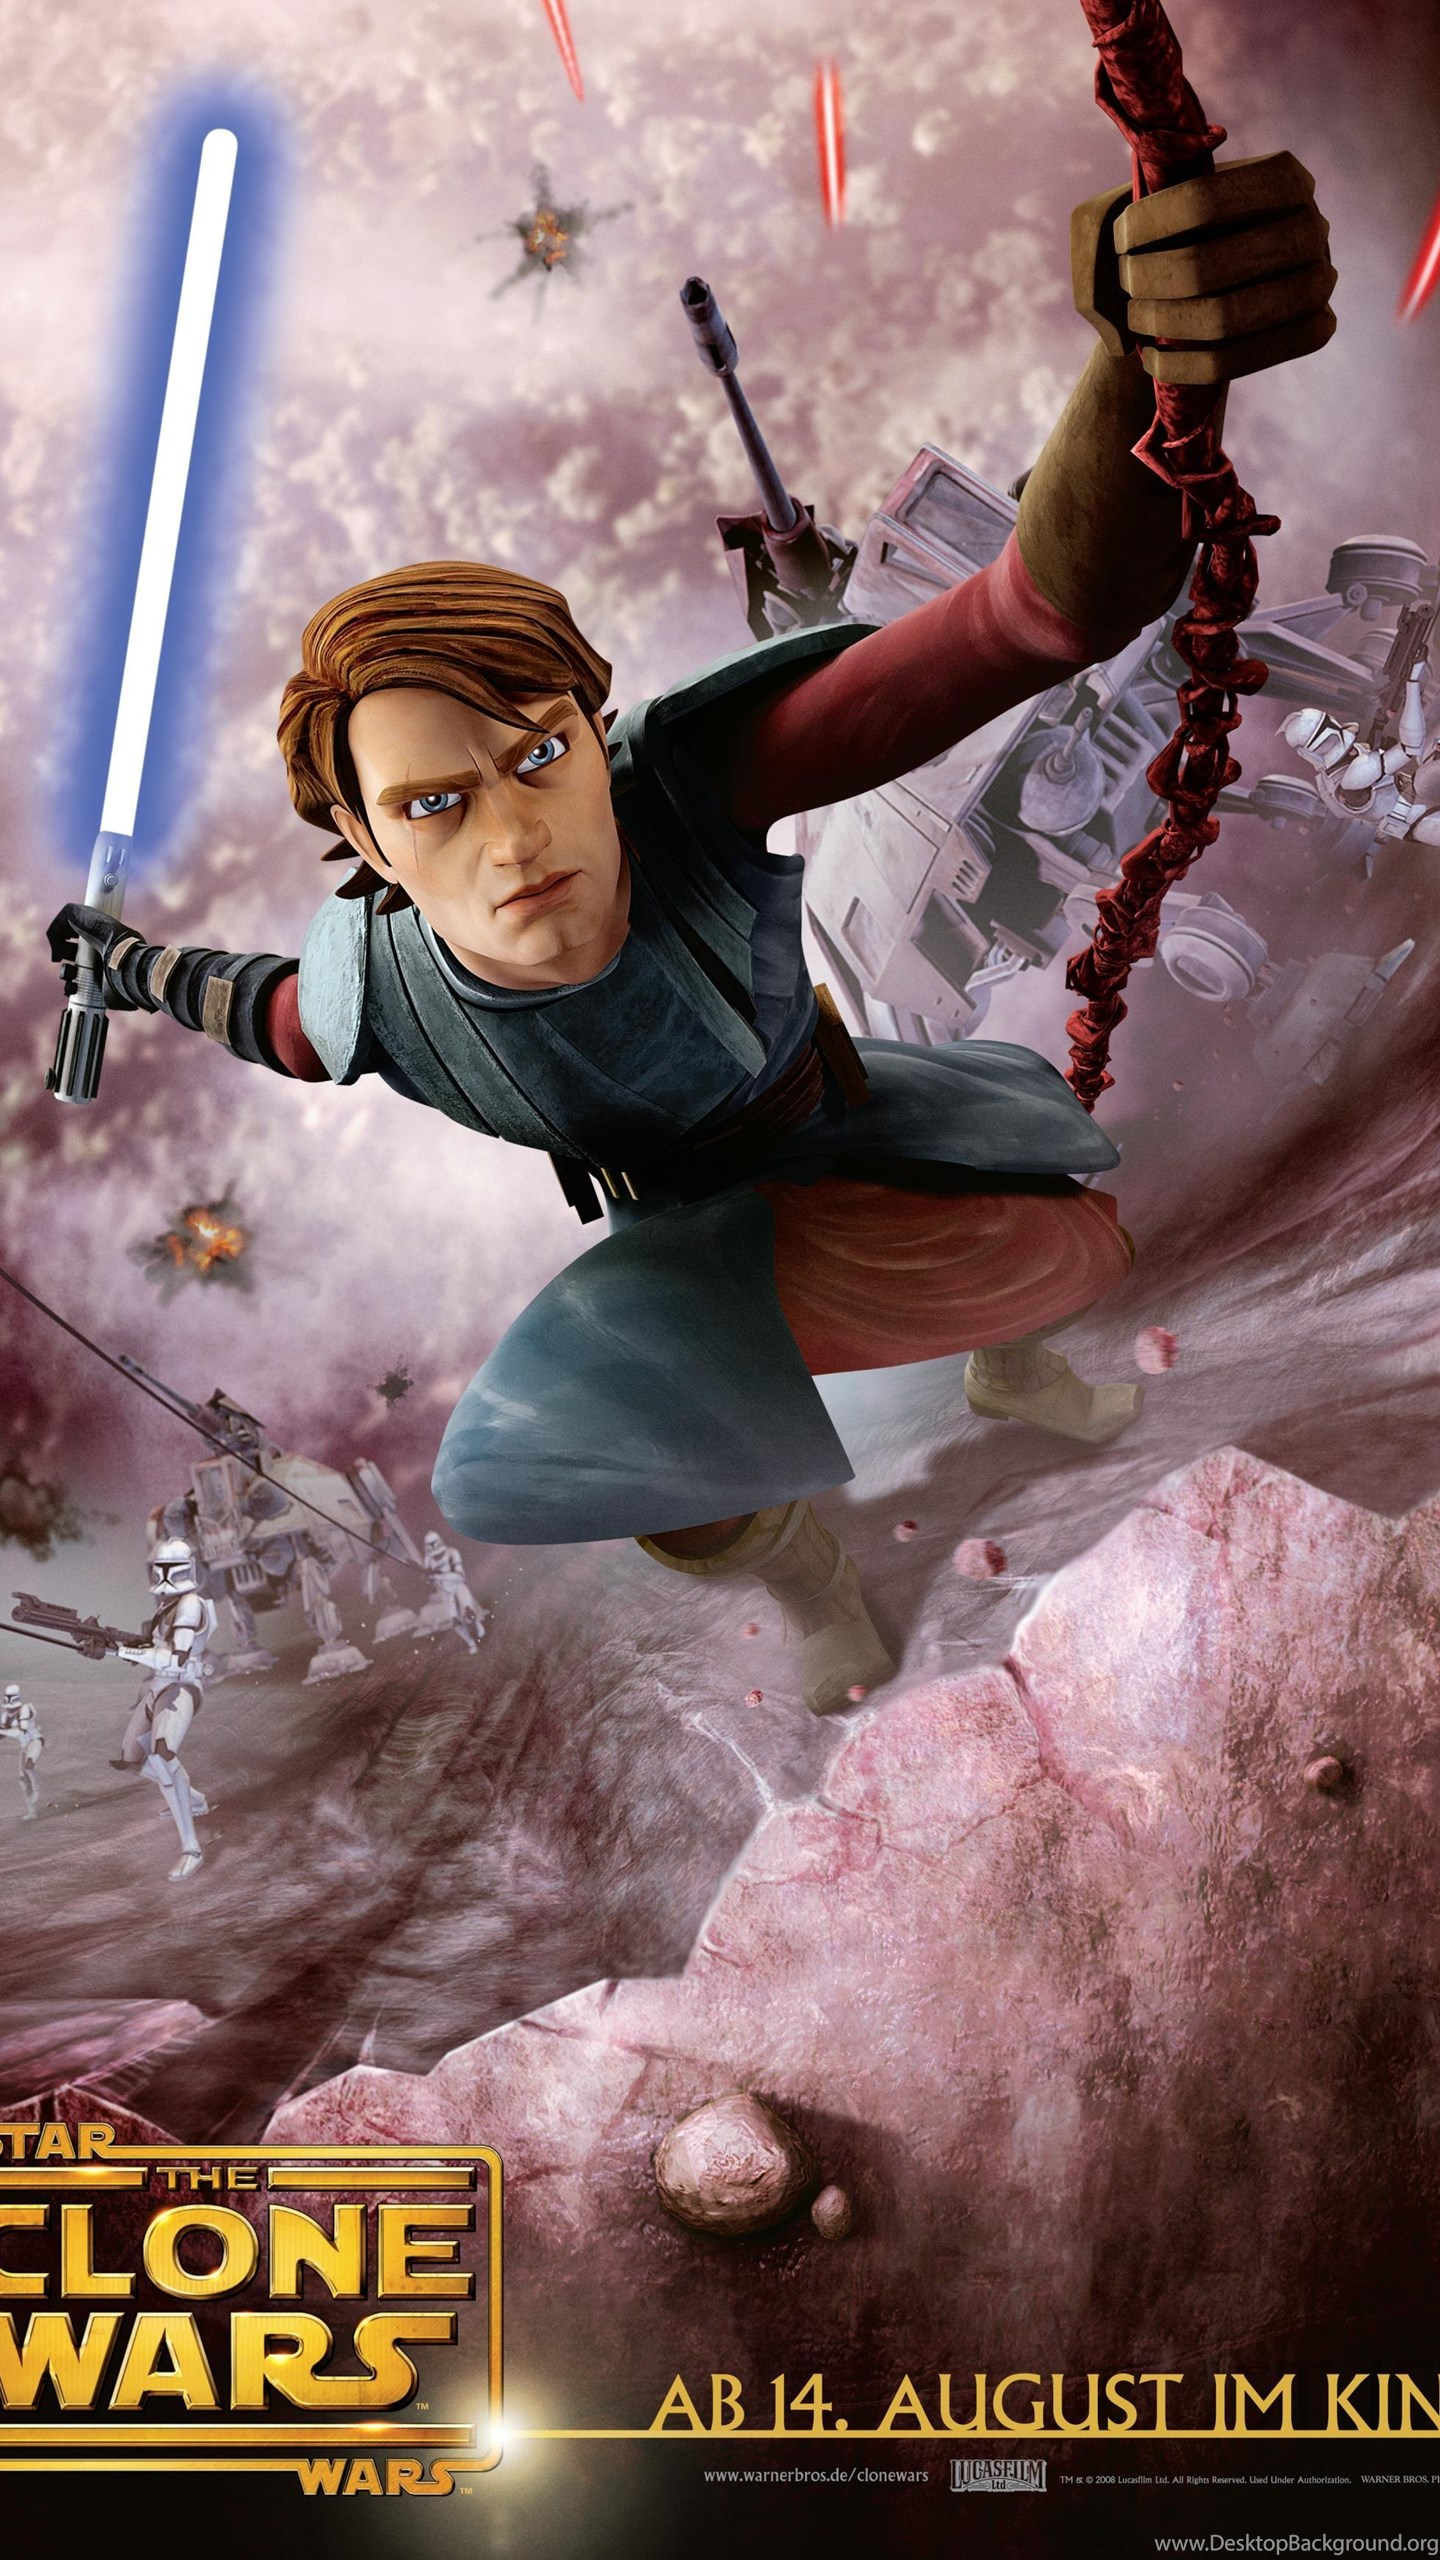 Star Wars The Clone Wars Anakin Skywalker Wallpapers And Images Desktop Background